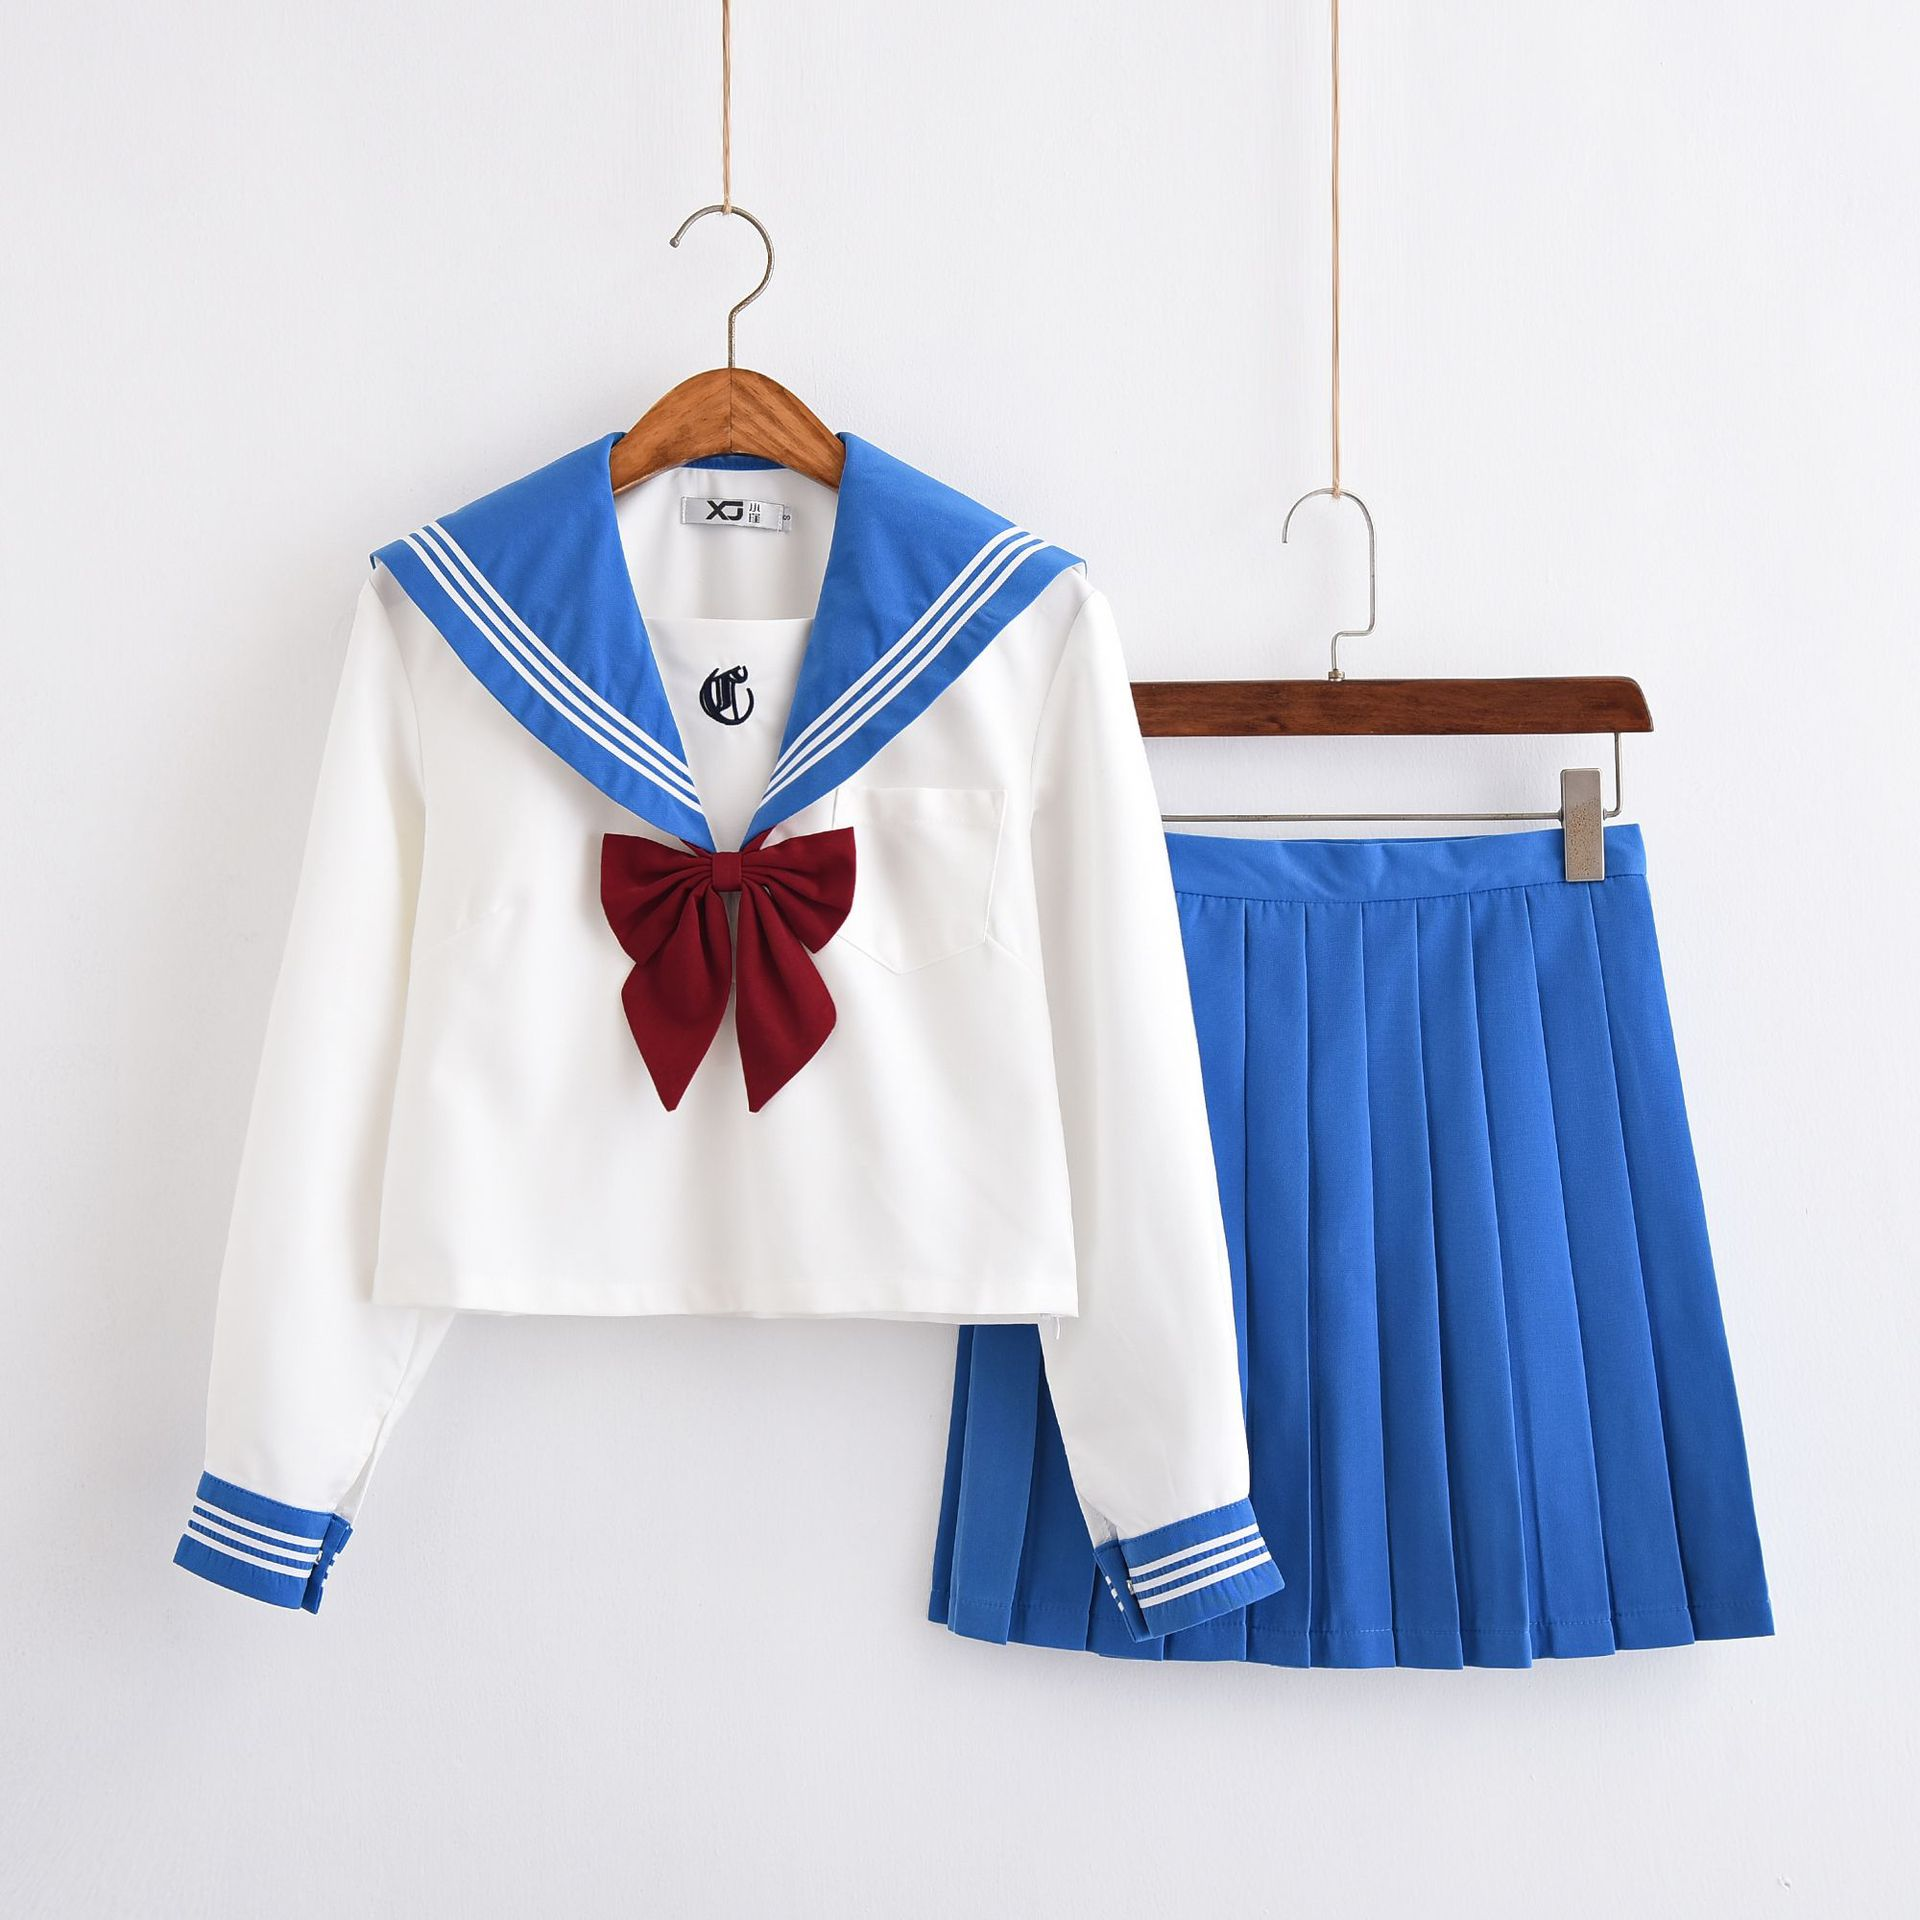 New School Uniforms Student Middle High School Japanese clothes For Girls Jk Uniform Long Sleeved Sailor Shirt Skirts Suit Class-in School Uniforms from Novelty & Special Use    1